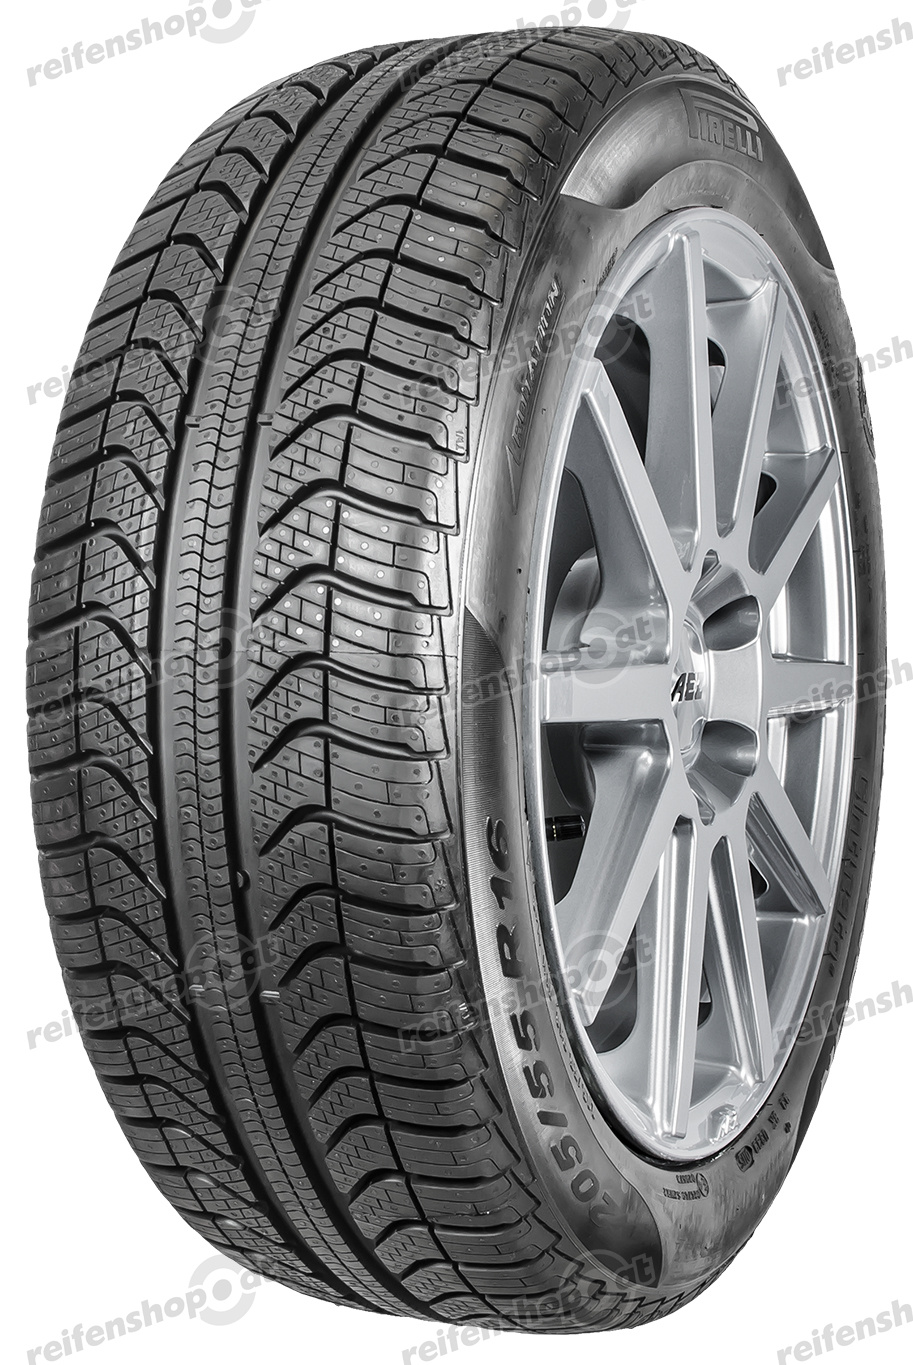 205/55 R16 91V Cinturato All Season M+S  Cinturato All Season M+S